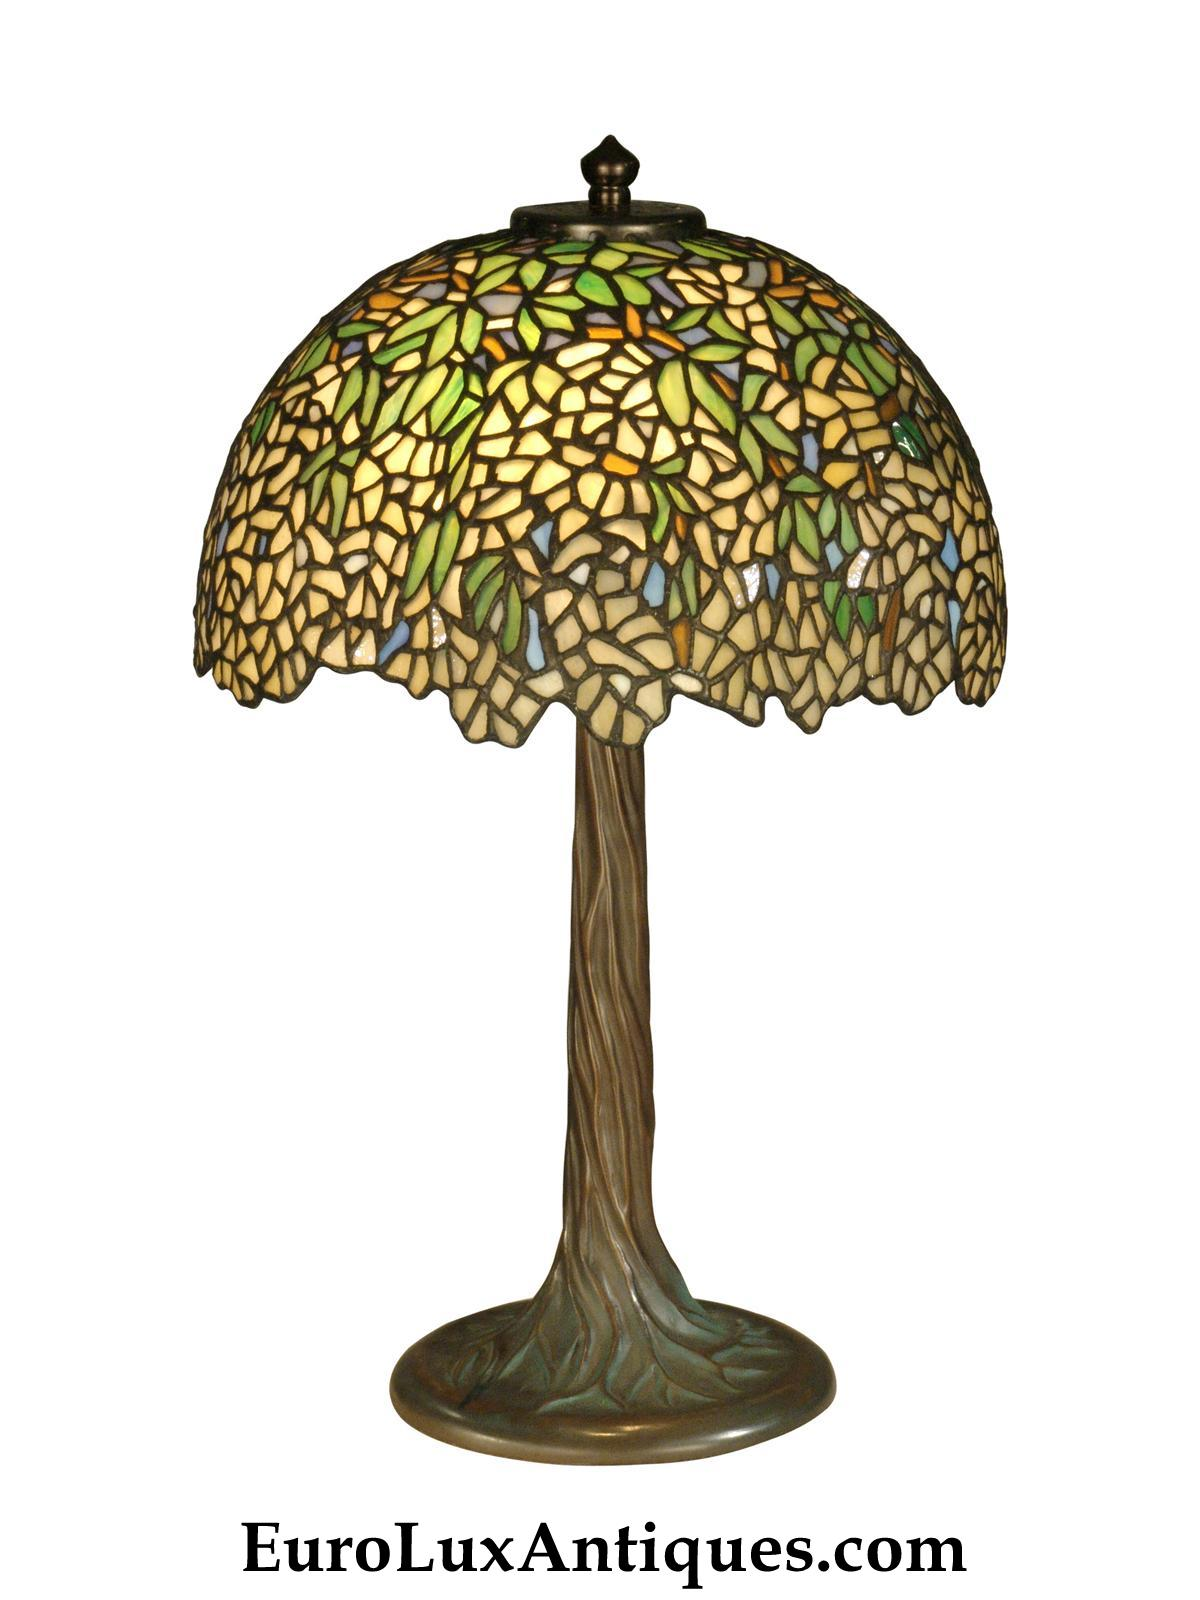 Table lamp from a selection of Dale Tiffany lamps at EuroLuxAntiques.com